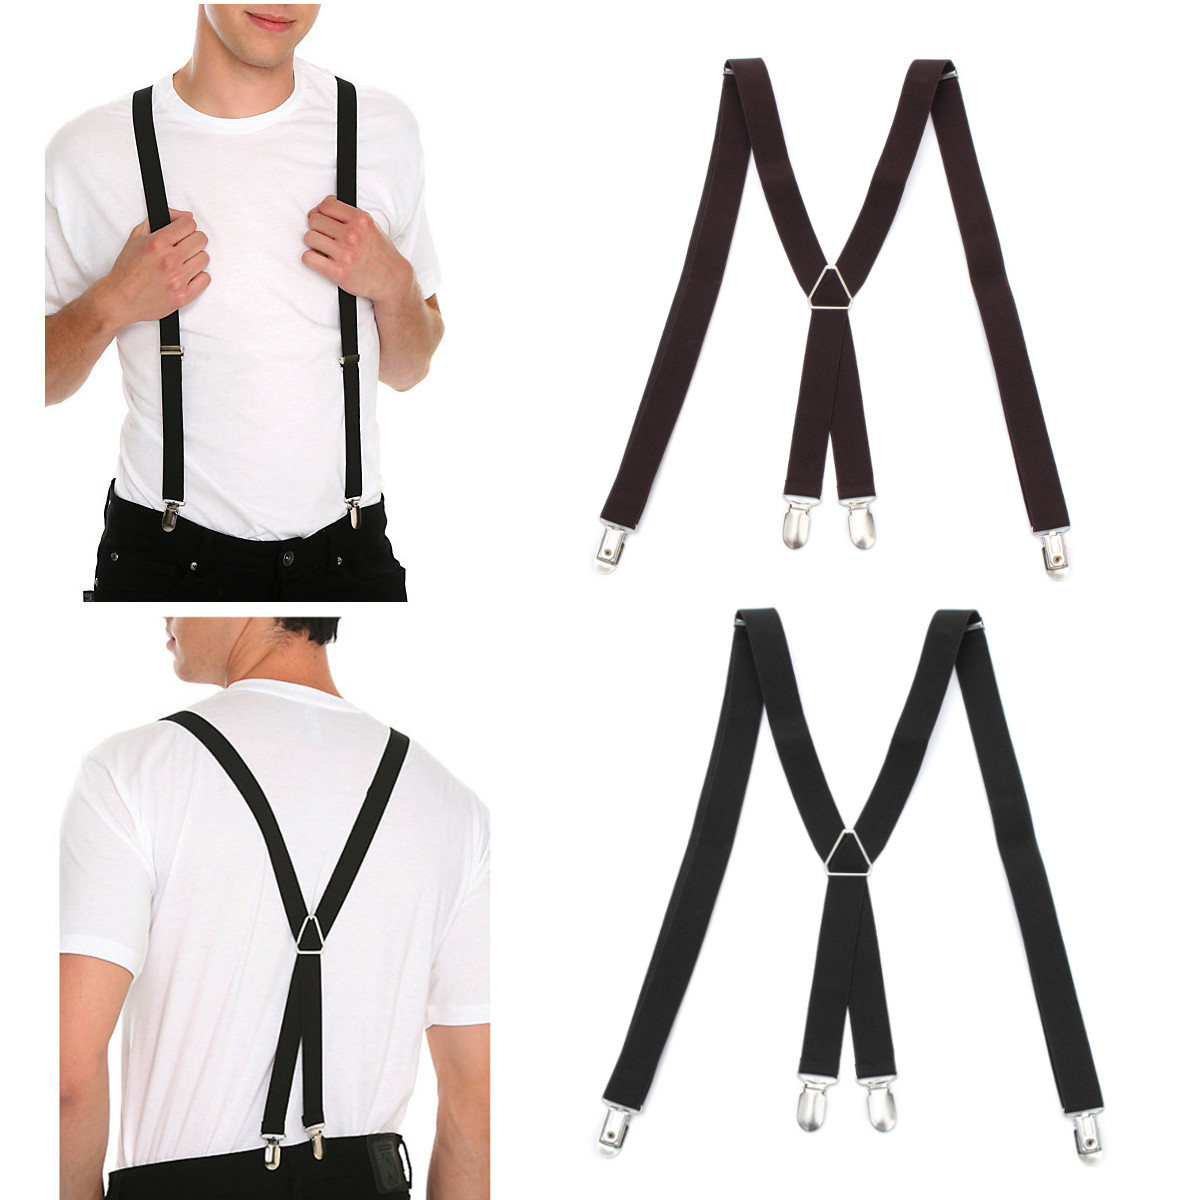 Men X-Back Clip Suspenders Adjustable Elastic Braces Supports Pant Clothing Accessories Unisex Women Trousers Braces Holder